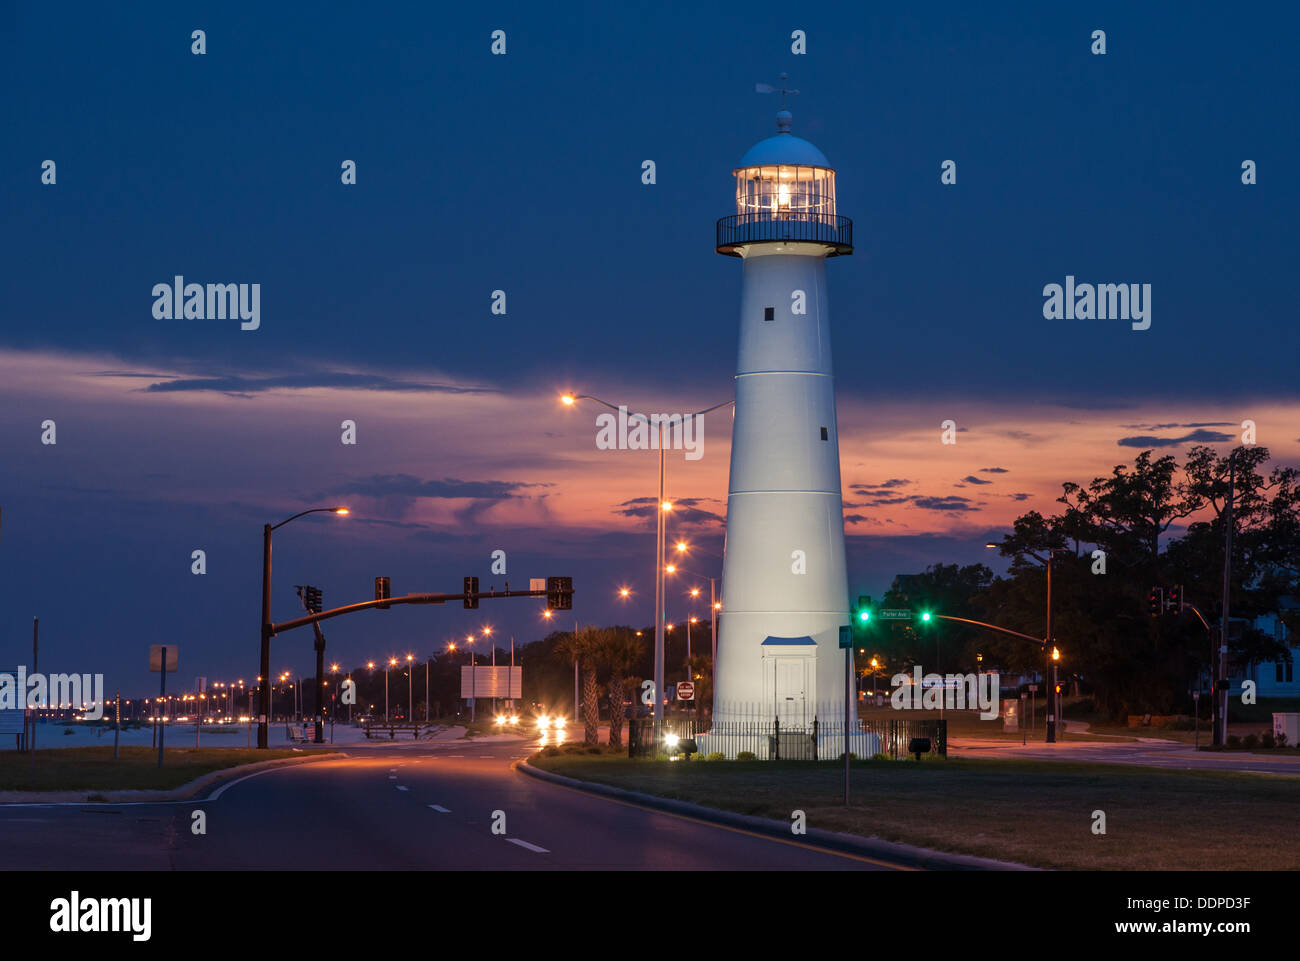 Biloxi Mississippi High Resolution Stock Photography And Images